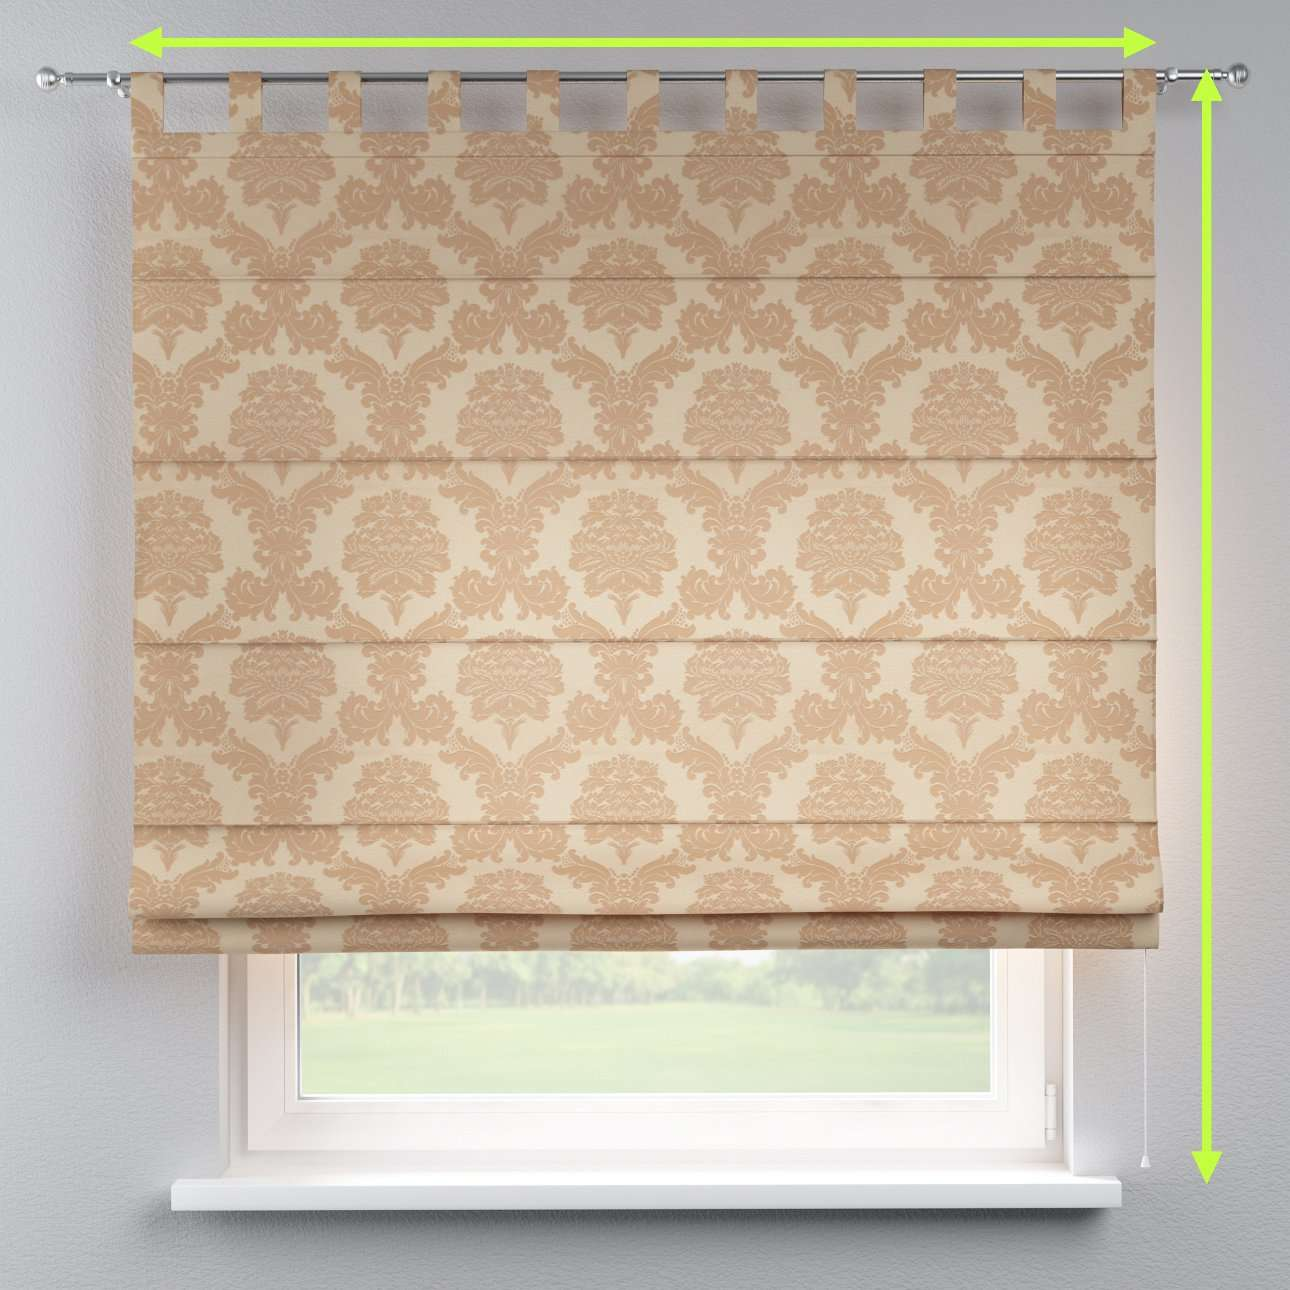 Verona tab top roman blind in collection Damasco, fabric: 613-04